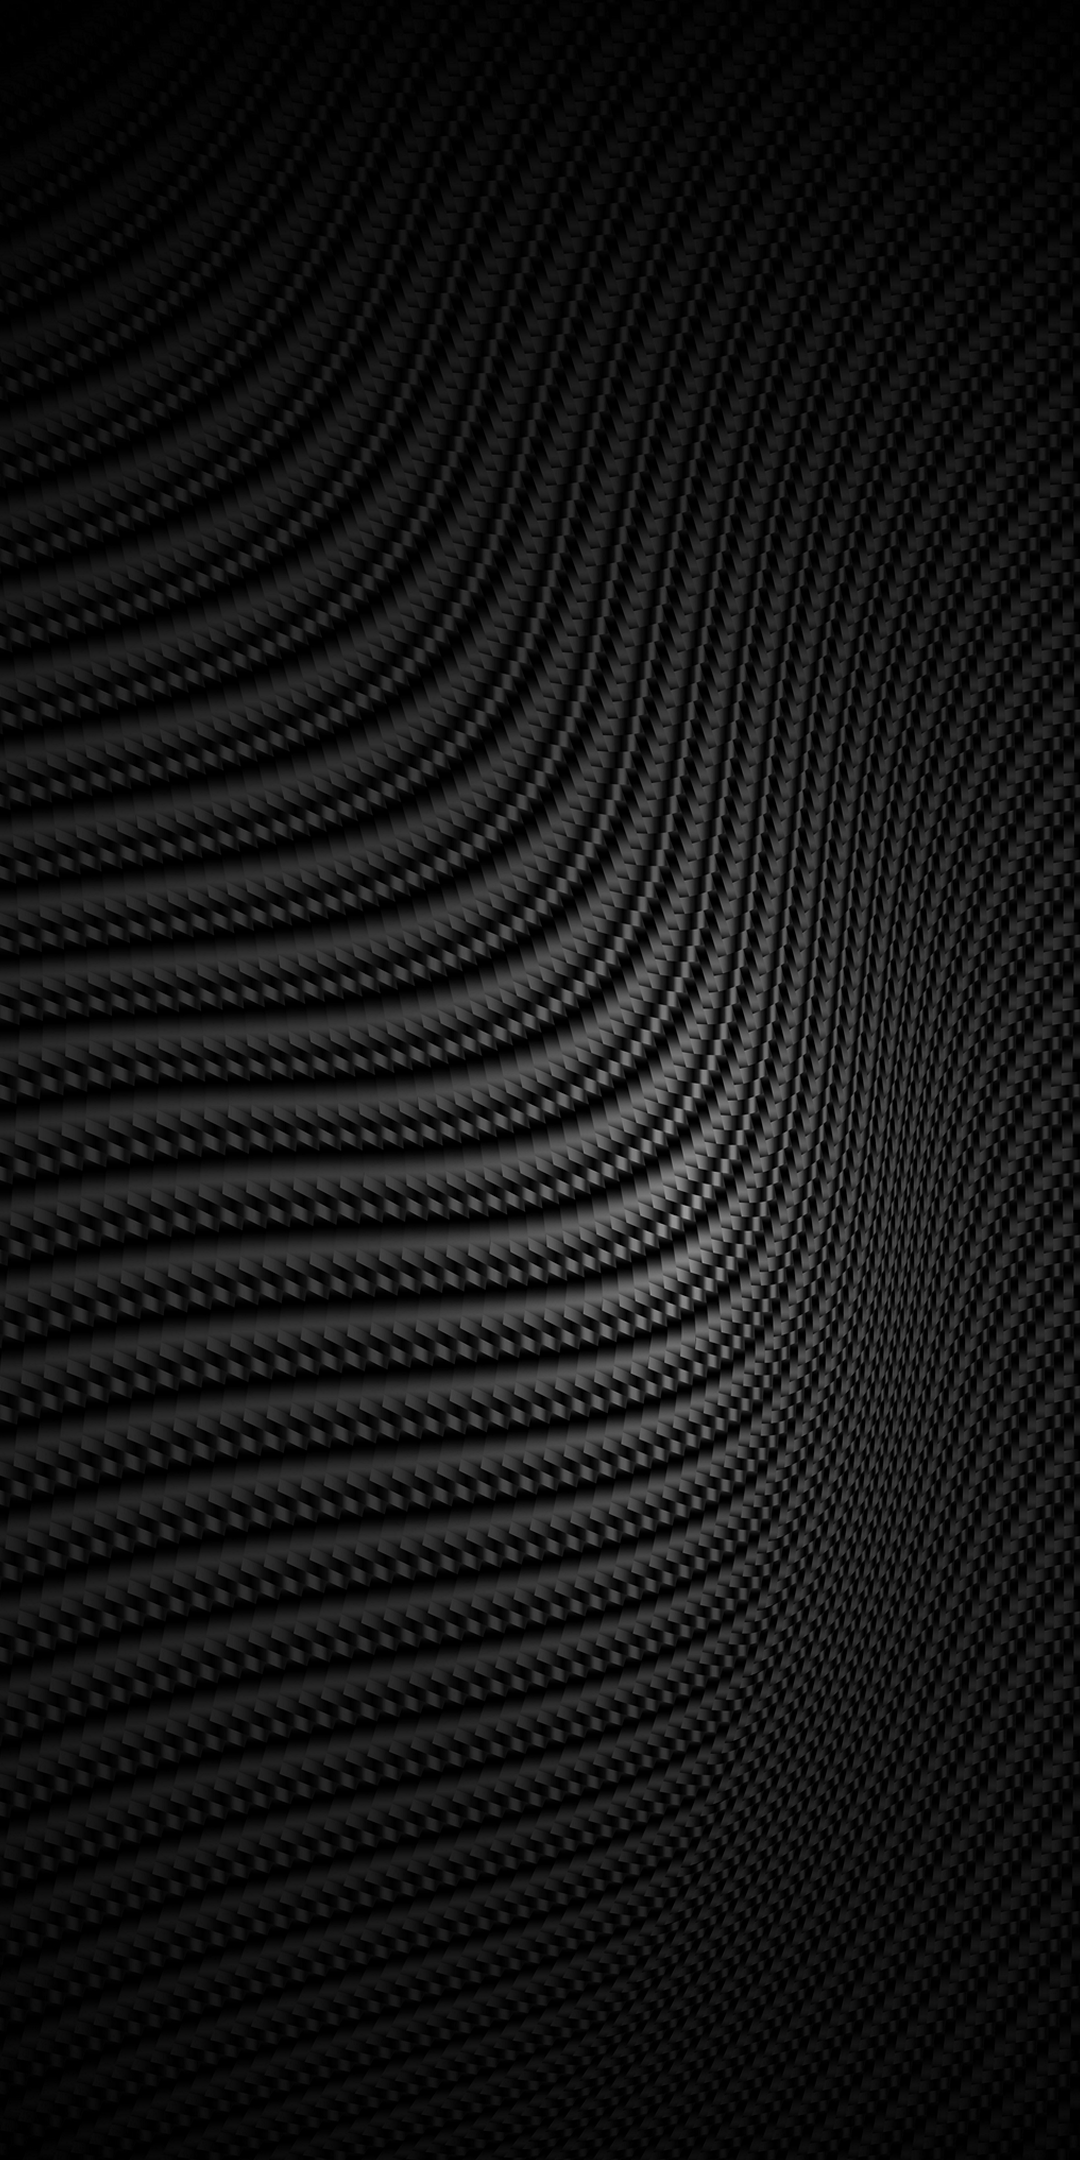 Get Cool Black Wallpaper Iphone Dark Abstract for iPhone X Free